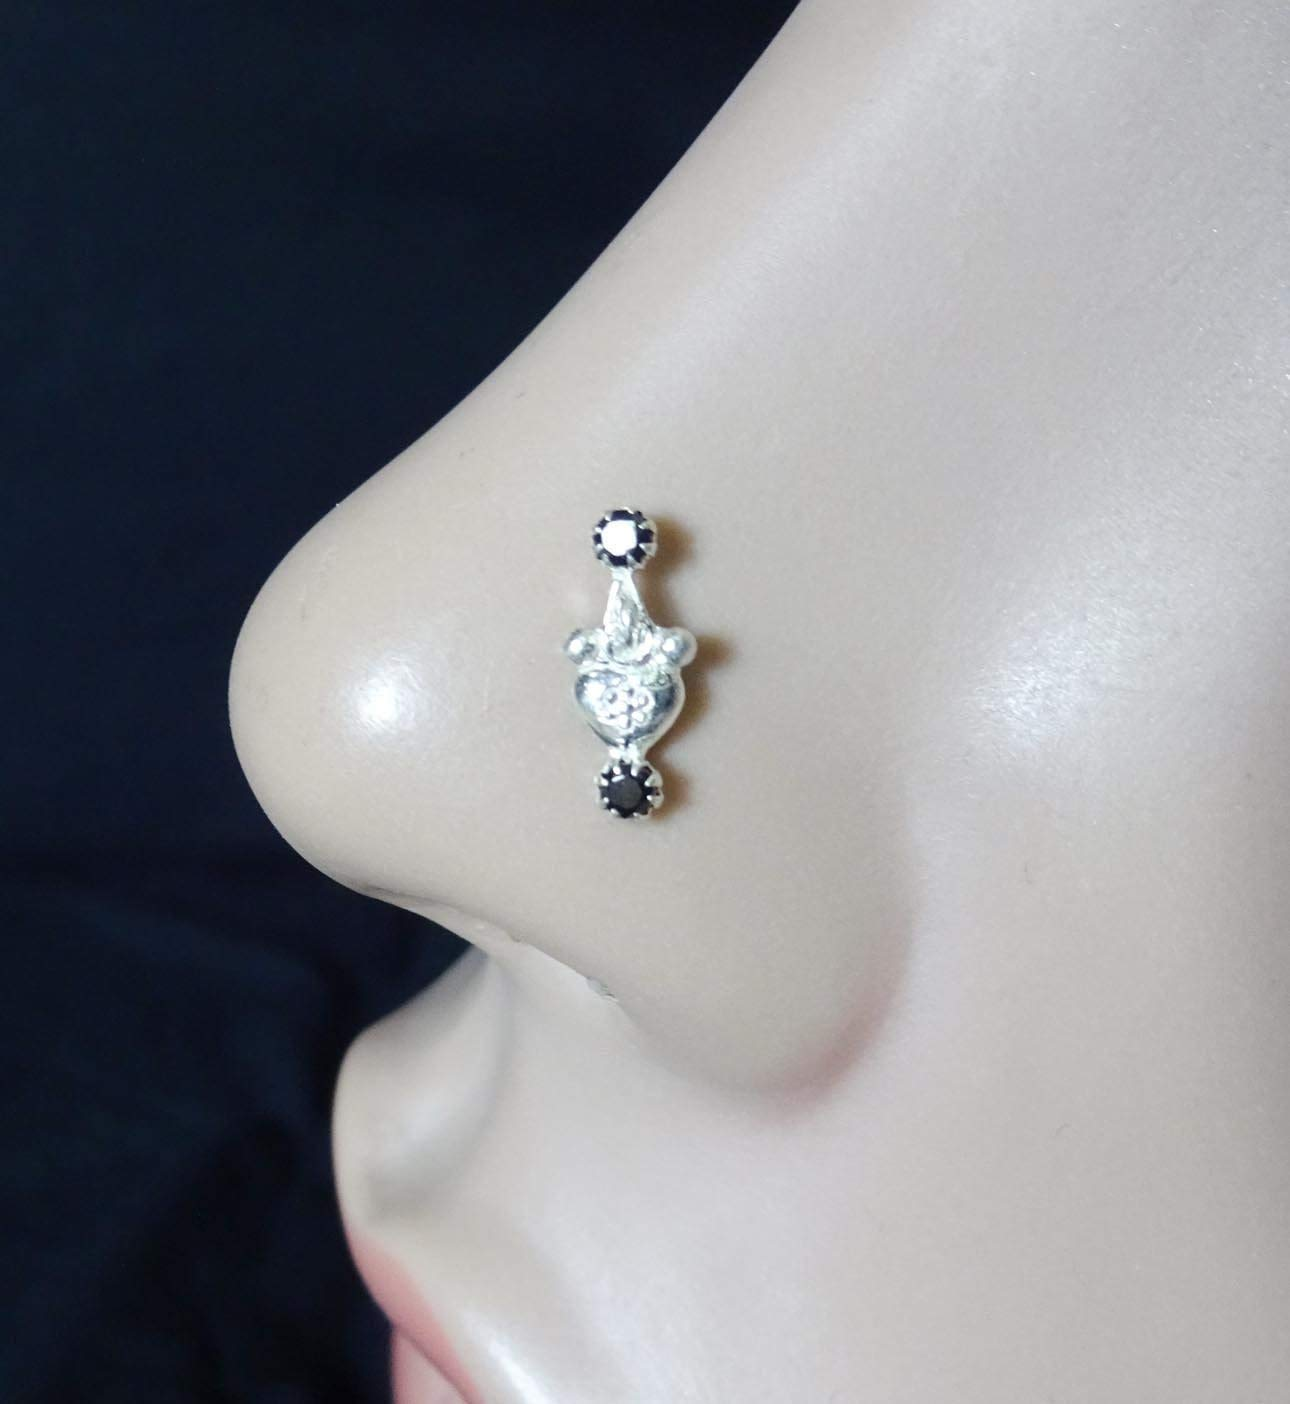 Black Stone Nose Stud,Silver Nose Cuff,Wedding Nose Screw,CZ Clear Nose Stud,Crock Screw Nose Stud,Silver Diamond Piercing,Indian Nose Stud,Monroe Nose Ring,Tiny Gold Piercing(TEJ724)